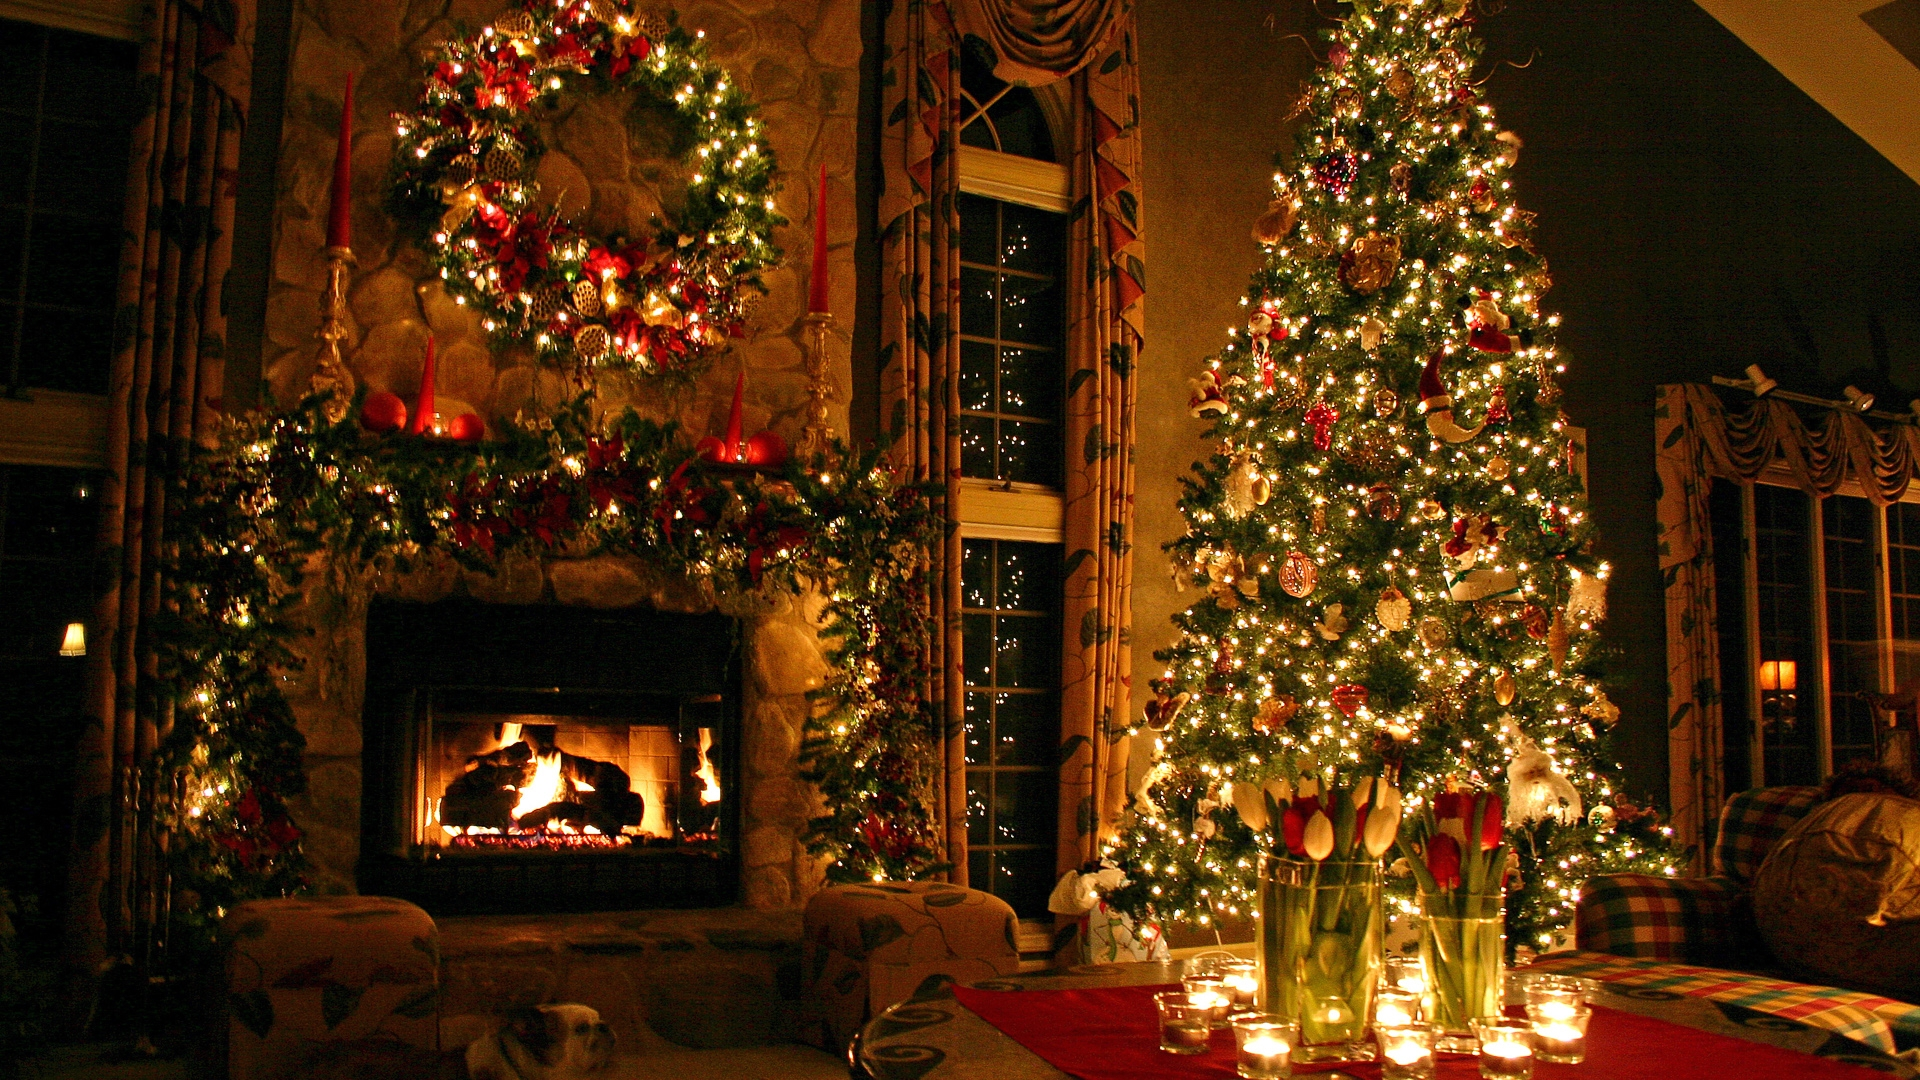 Full HD 1080p Holidays Wallpapers, Desktop Backgrounds HD